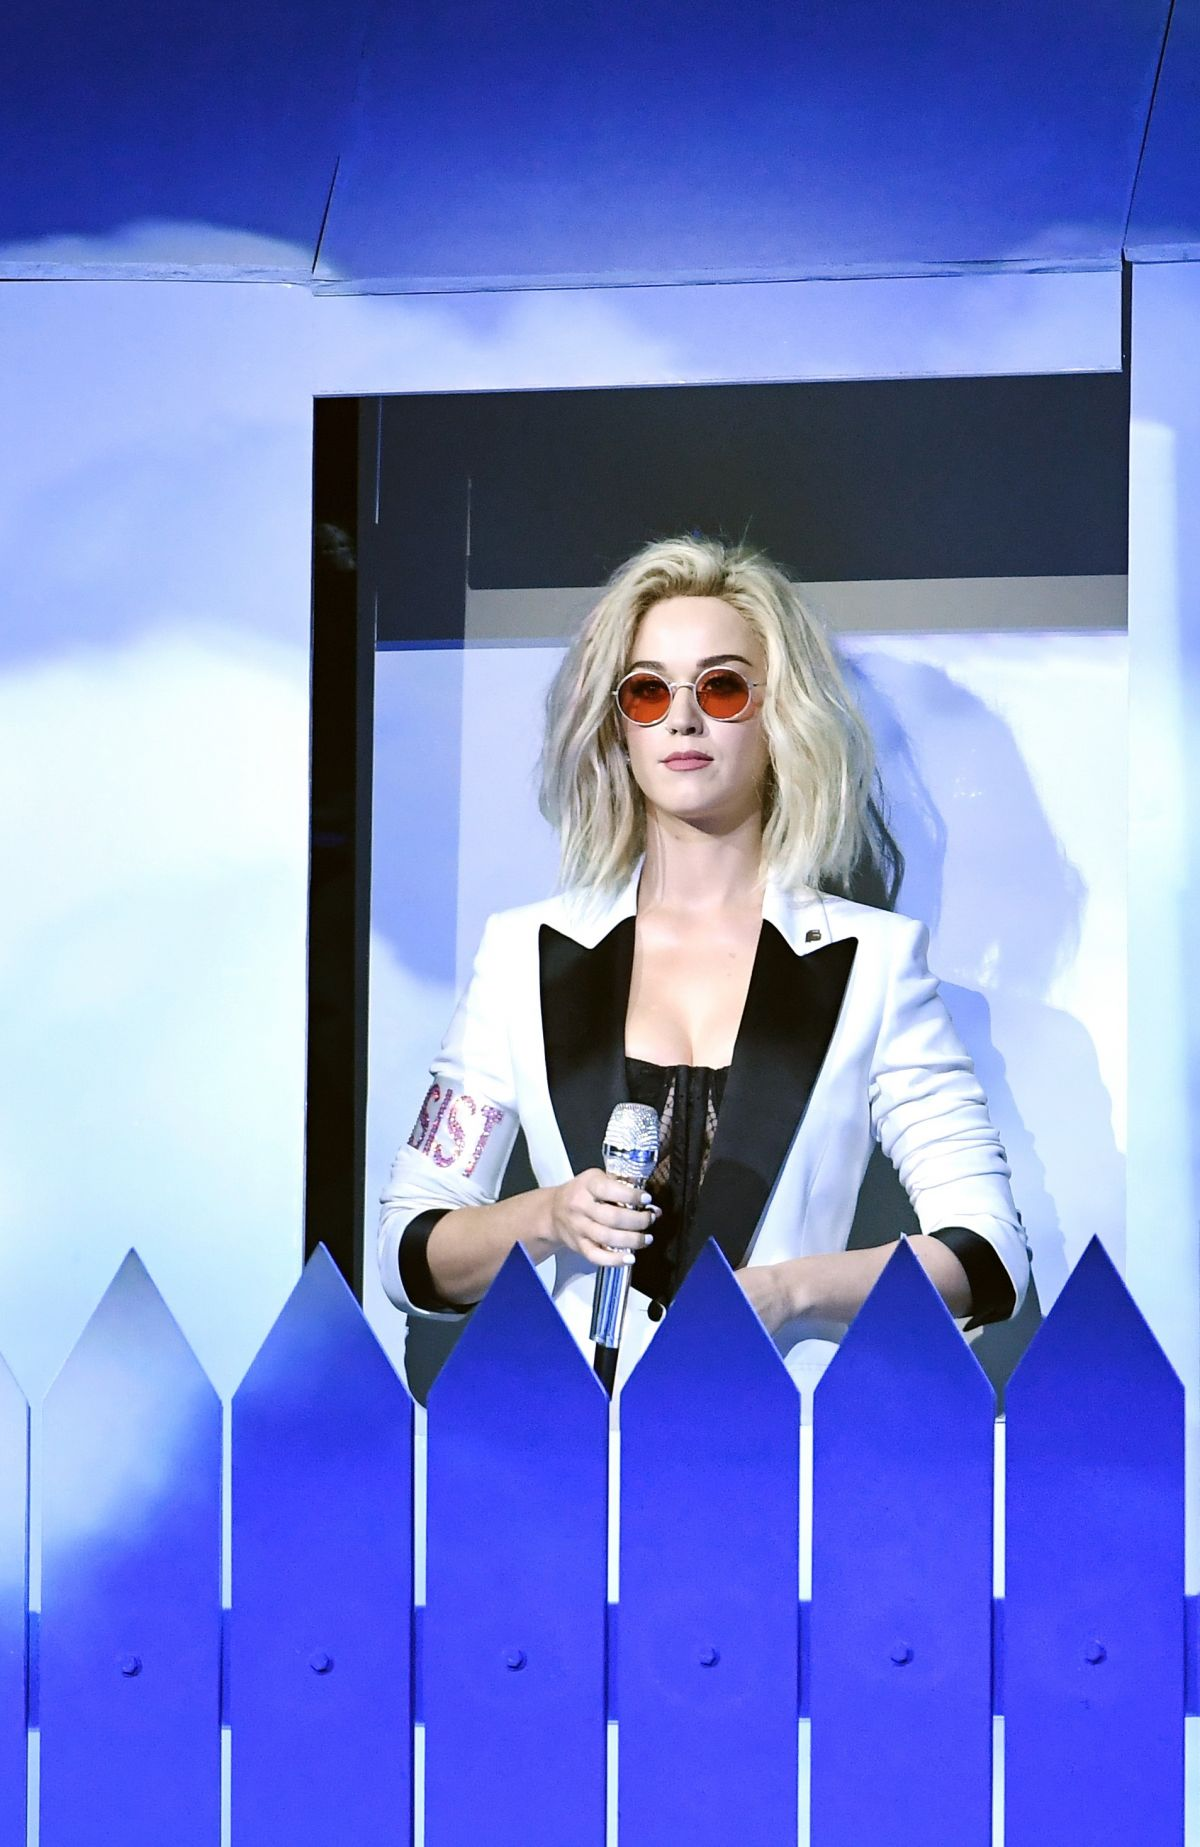 KATY PERRY Performs at 2017 Grammy Awards in Los Angeles ...